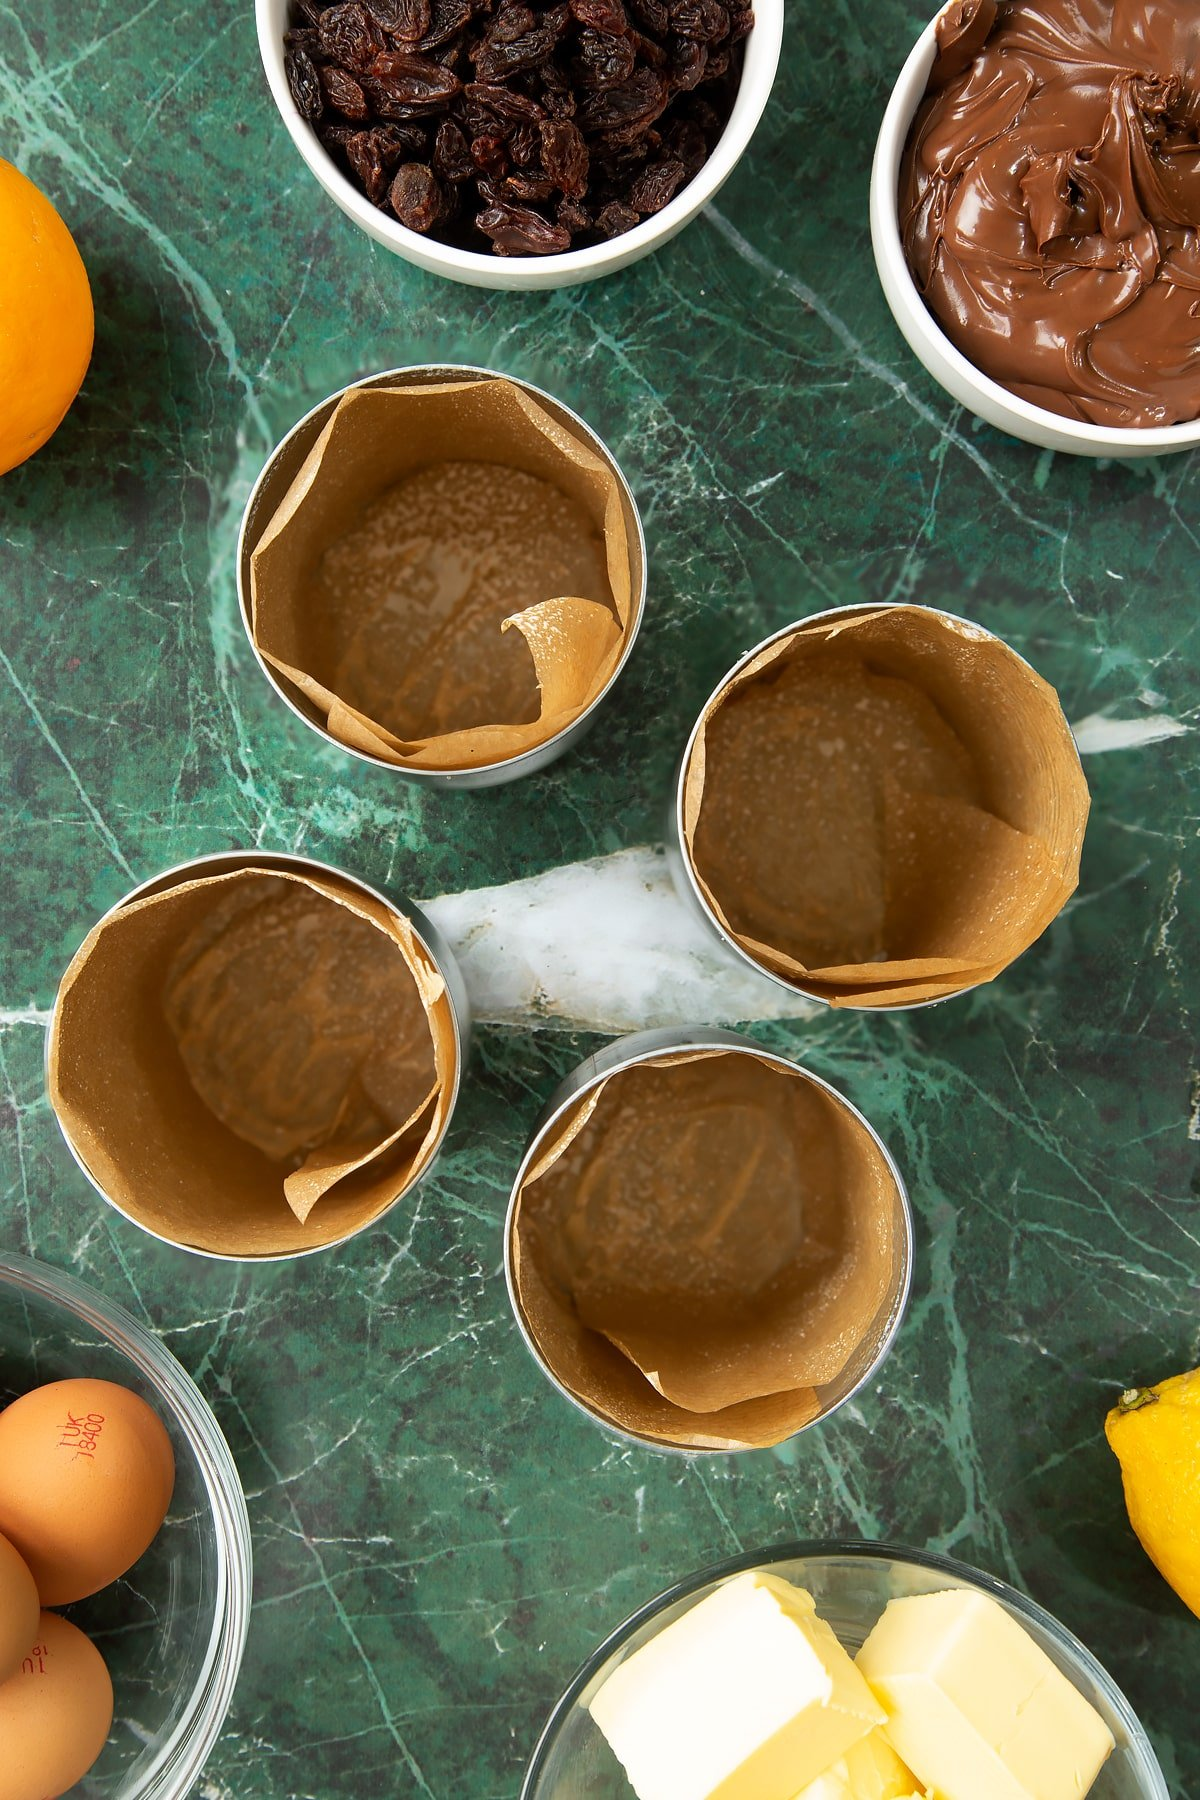 4 tin cans lined with brown baking paper. Ingredients to make Nutella panettone surround the cans.